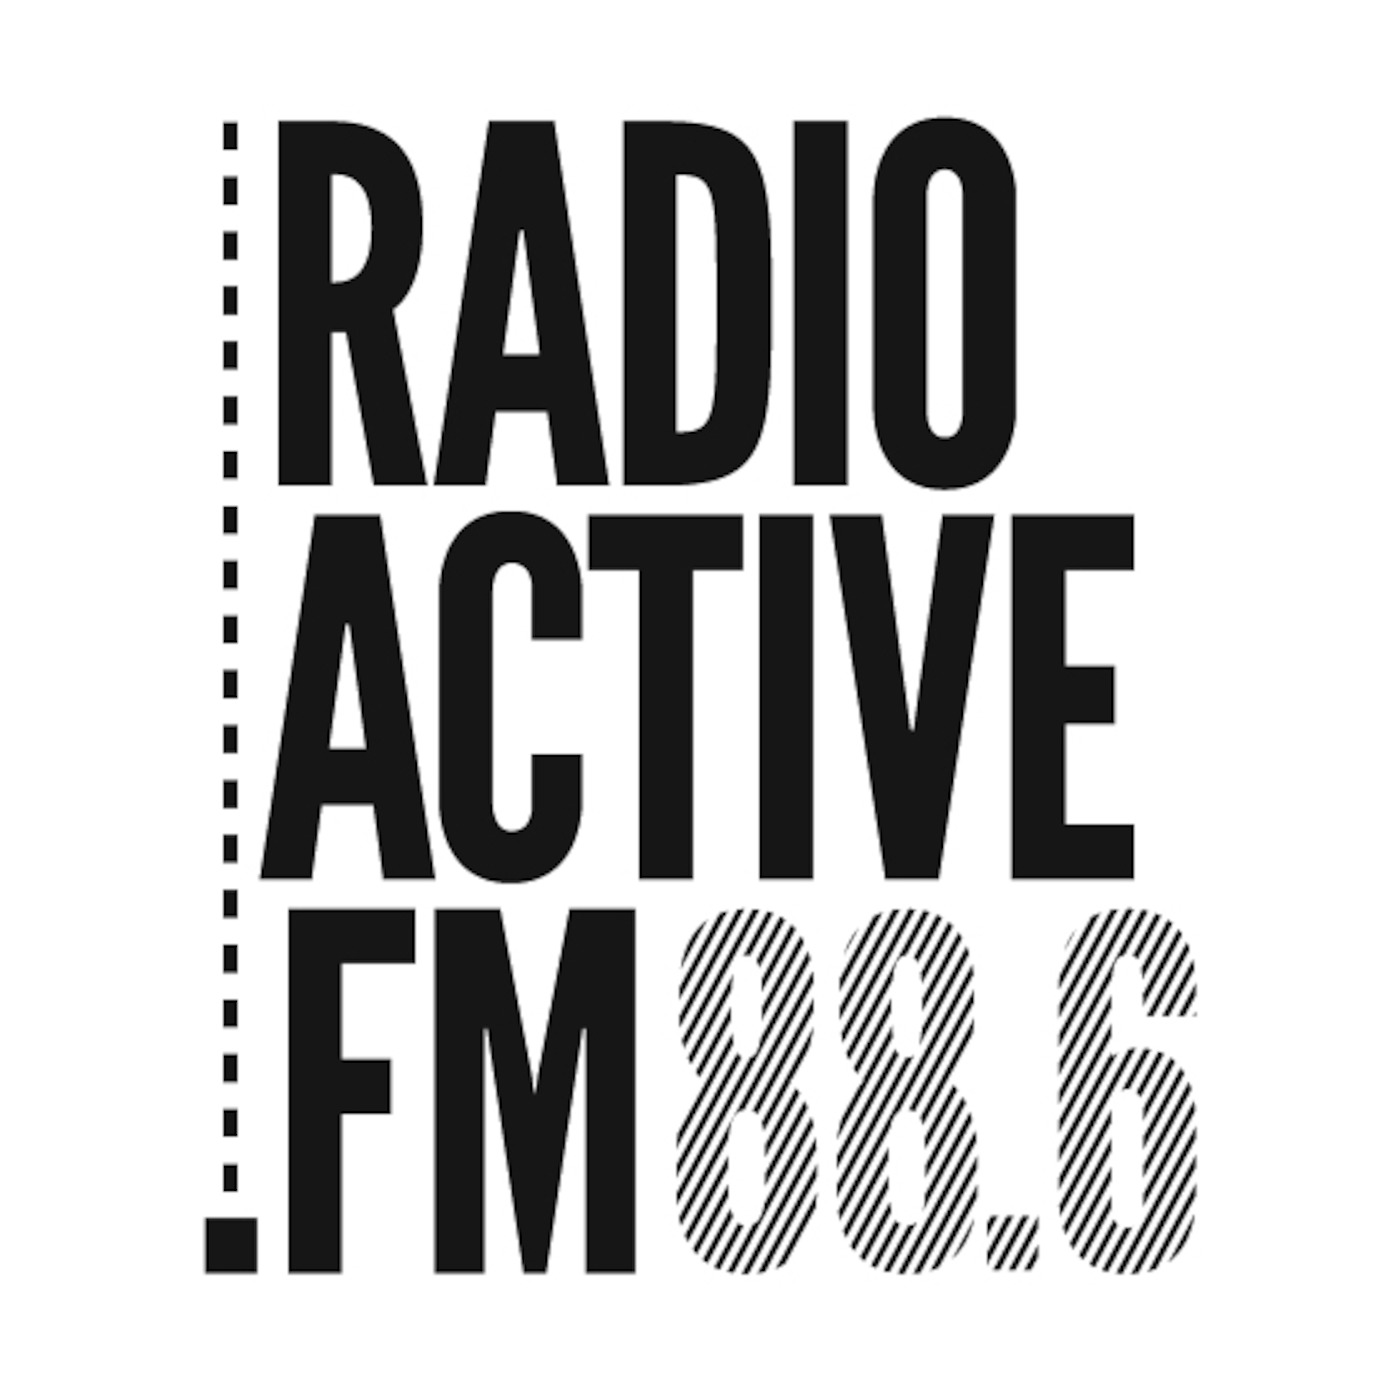 RadioActive.fm Recharted with thanks to NZ on Air Music